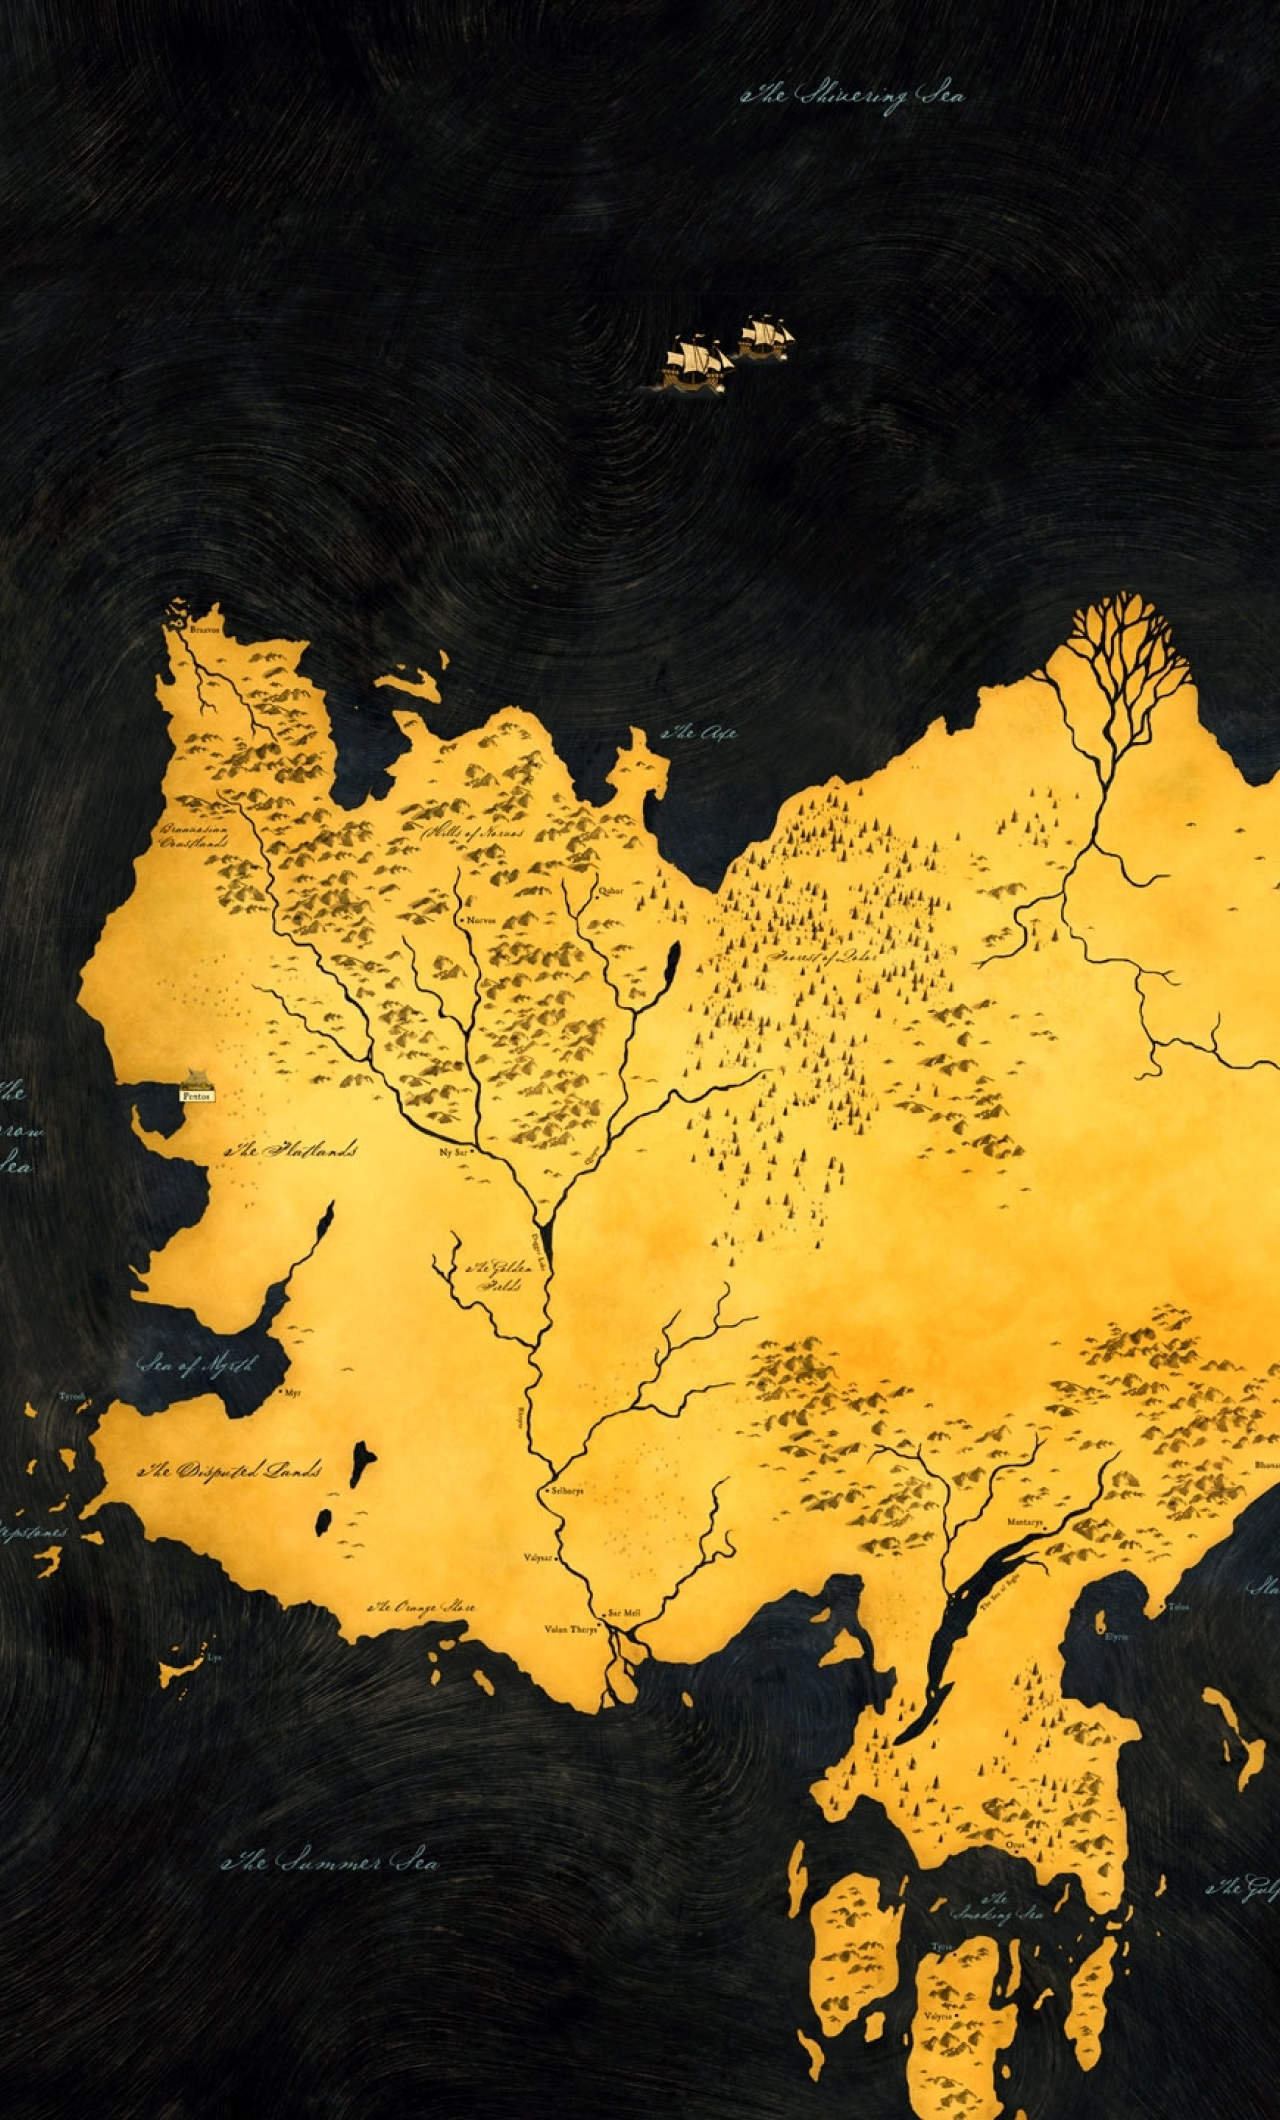 Download Game Of Thrones Map Photoshoot 2160x3840 Resolution Full